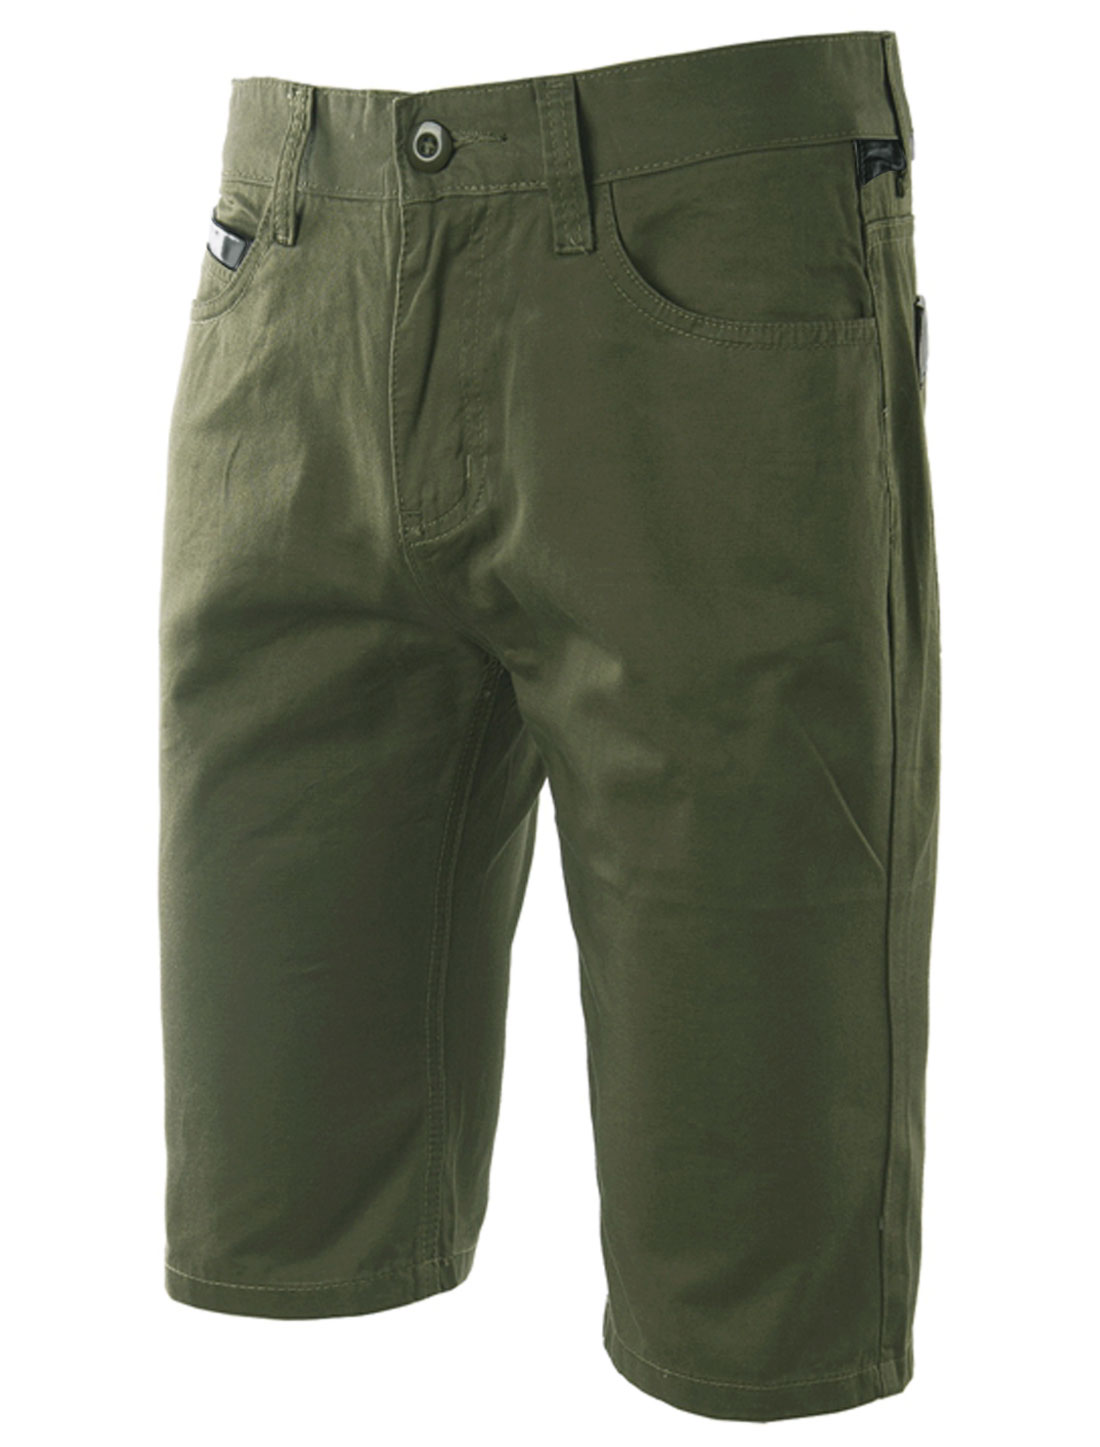 Man's Mid Rise Single Button Closure Zip Fly Casual Shorts Army Green W34